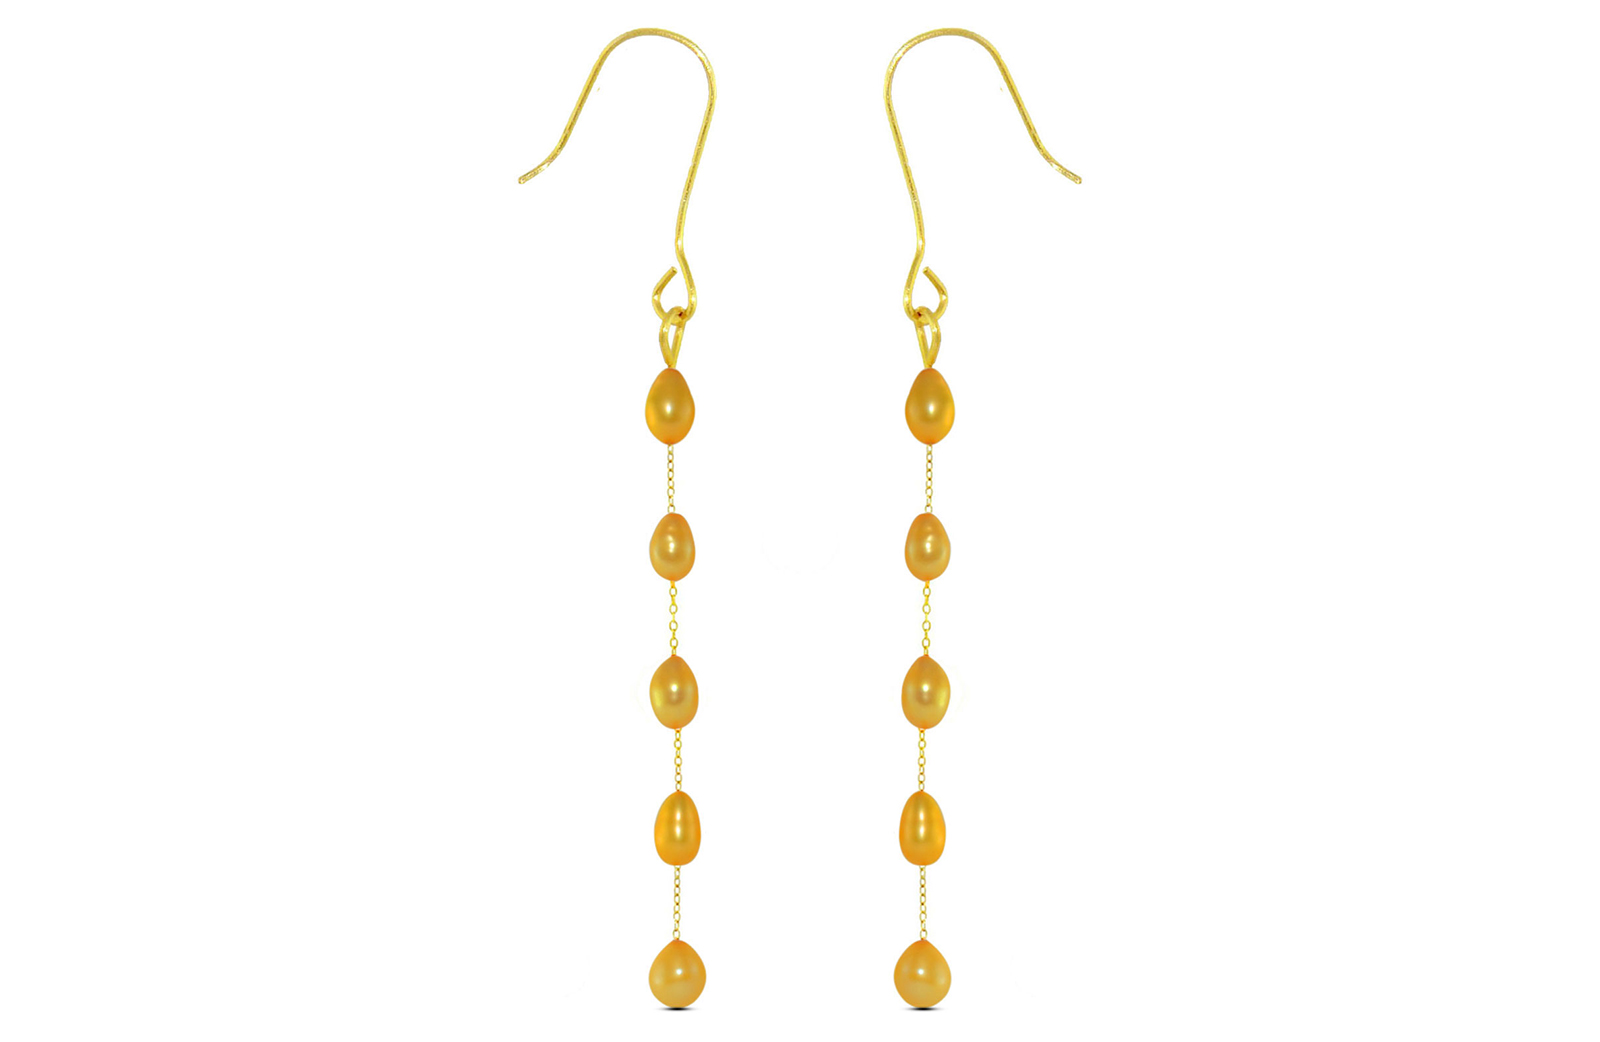 Vera Perla 18K Gold Golden Pearls Opera Drop Earrings